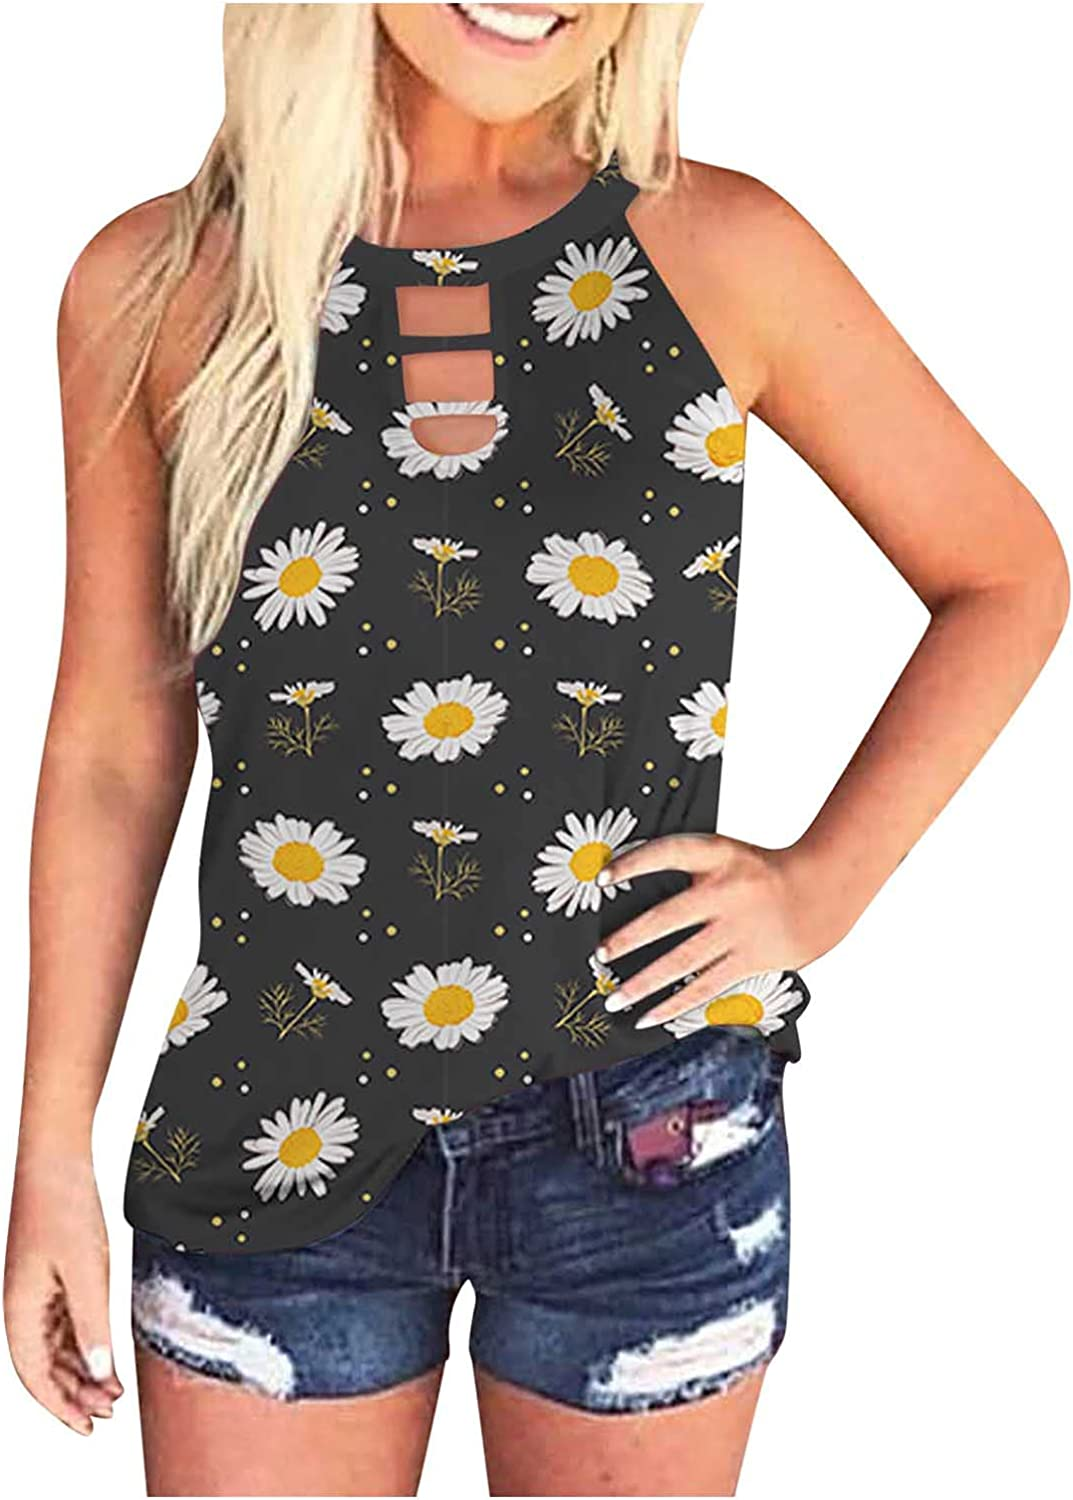 AODONG Tank Tops for Women Casual, Womens Sleeveless Fit Tie-Dye Summer Loose Tops Tunics Blouses Tee Shirts Vest